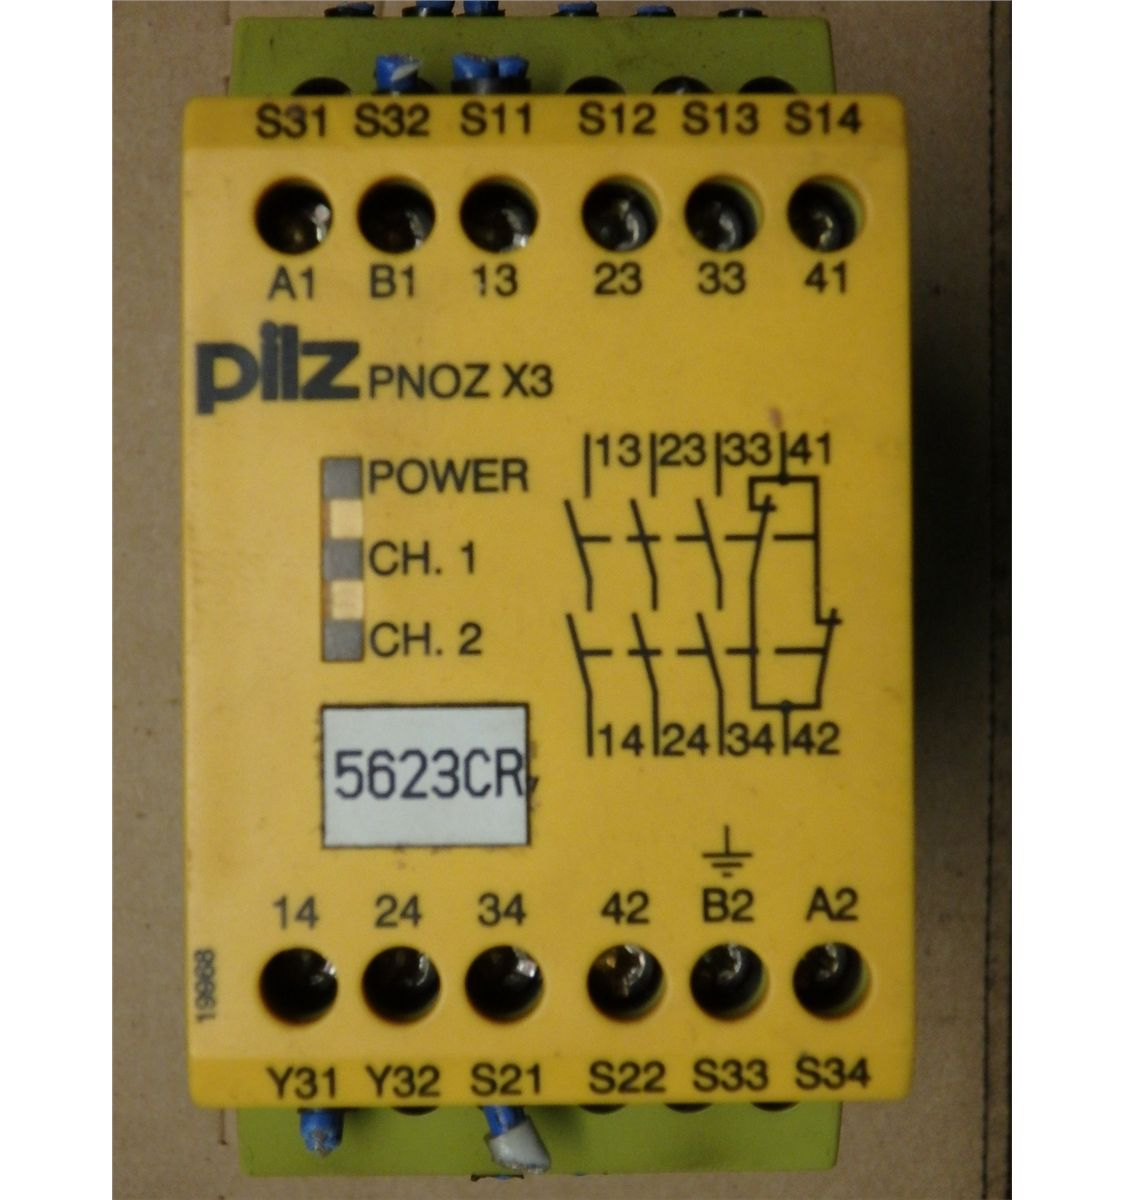 PILZ PNOZ X3 Safety Relay Pilz Safety Relay Wiring on lucas relay wiring, allen bradley relay wiring, crydom relay wiring, siemens relay wiring, bosch relay wiring, idec relay wiring, finder relay wiring,